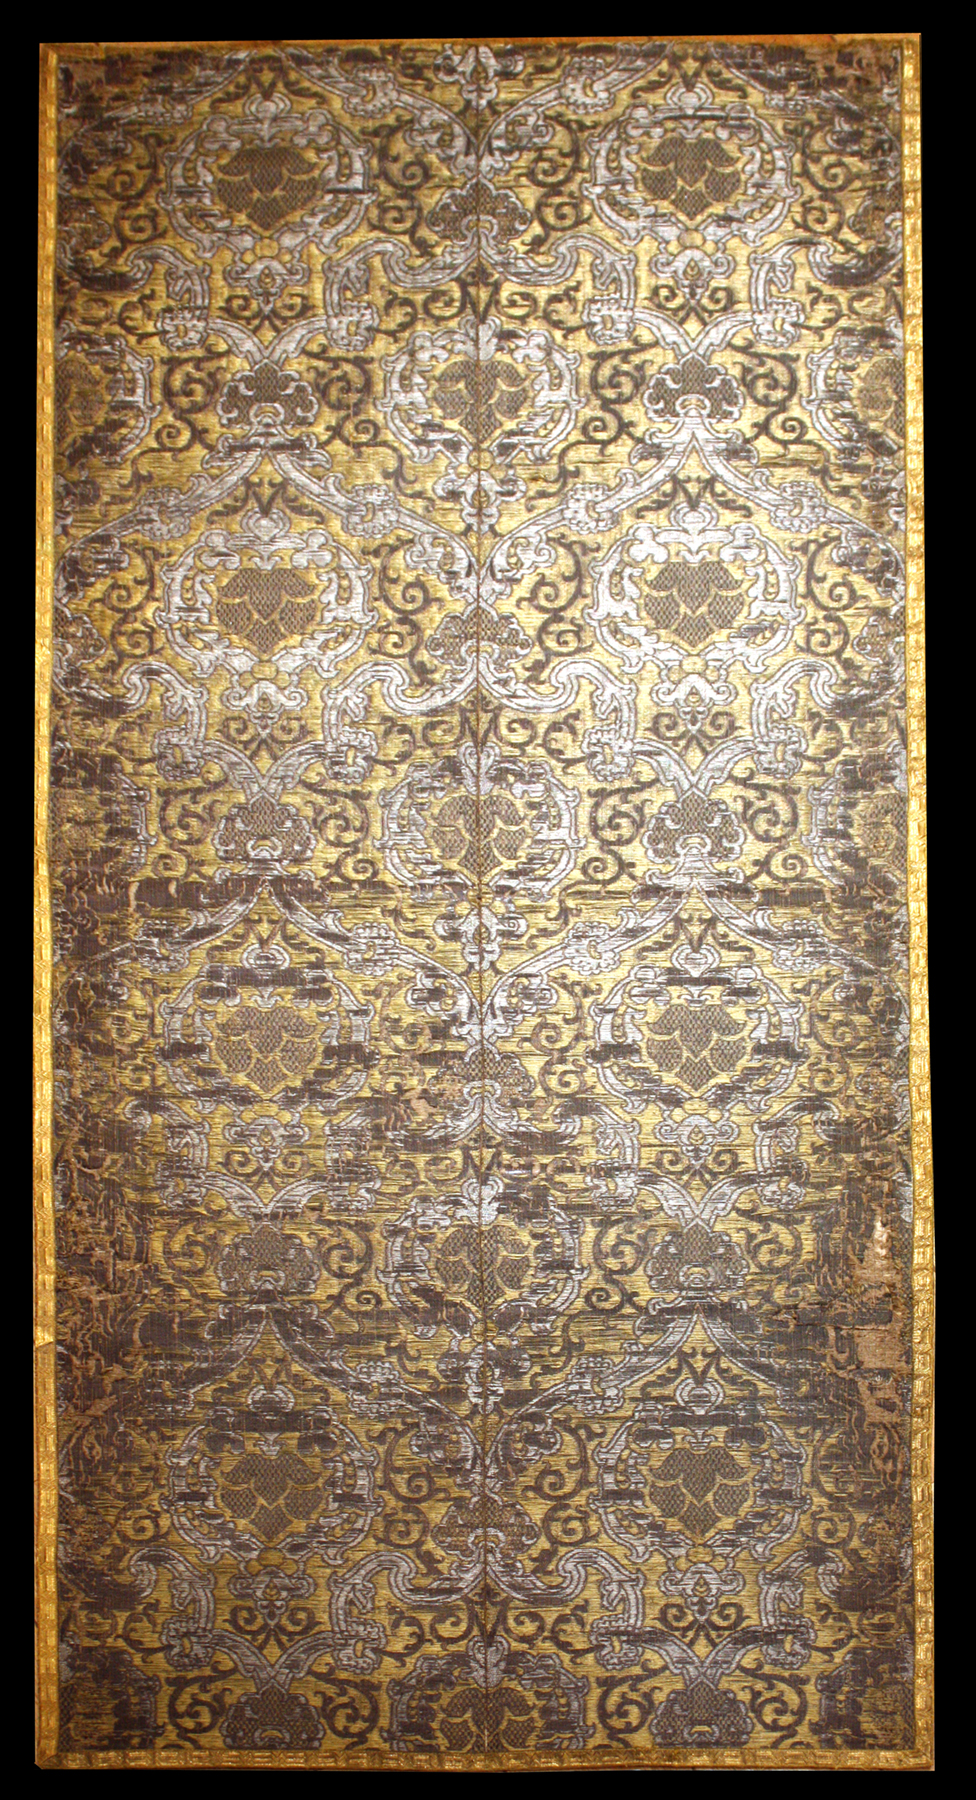 Italian Brocatelle, circa 1550, with a design of arabesques, entwining stems and vegetal ornament woven in silver metal thread and silk on a rich yellow silk ground. Joanna Booth, London